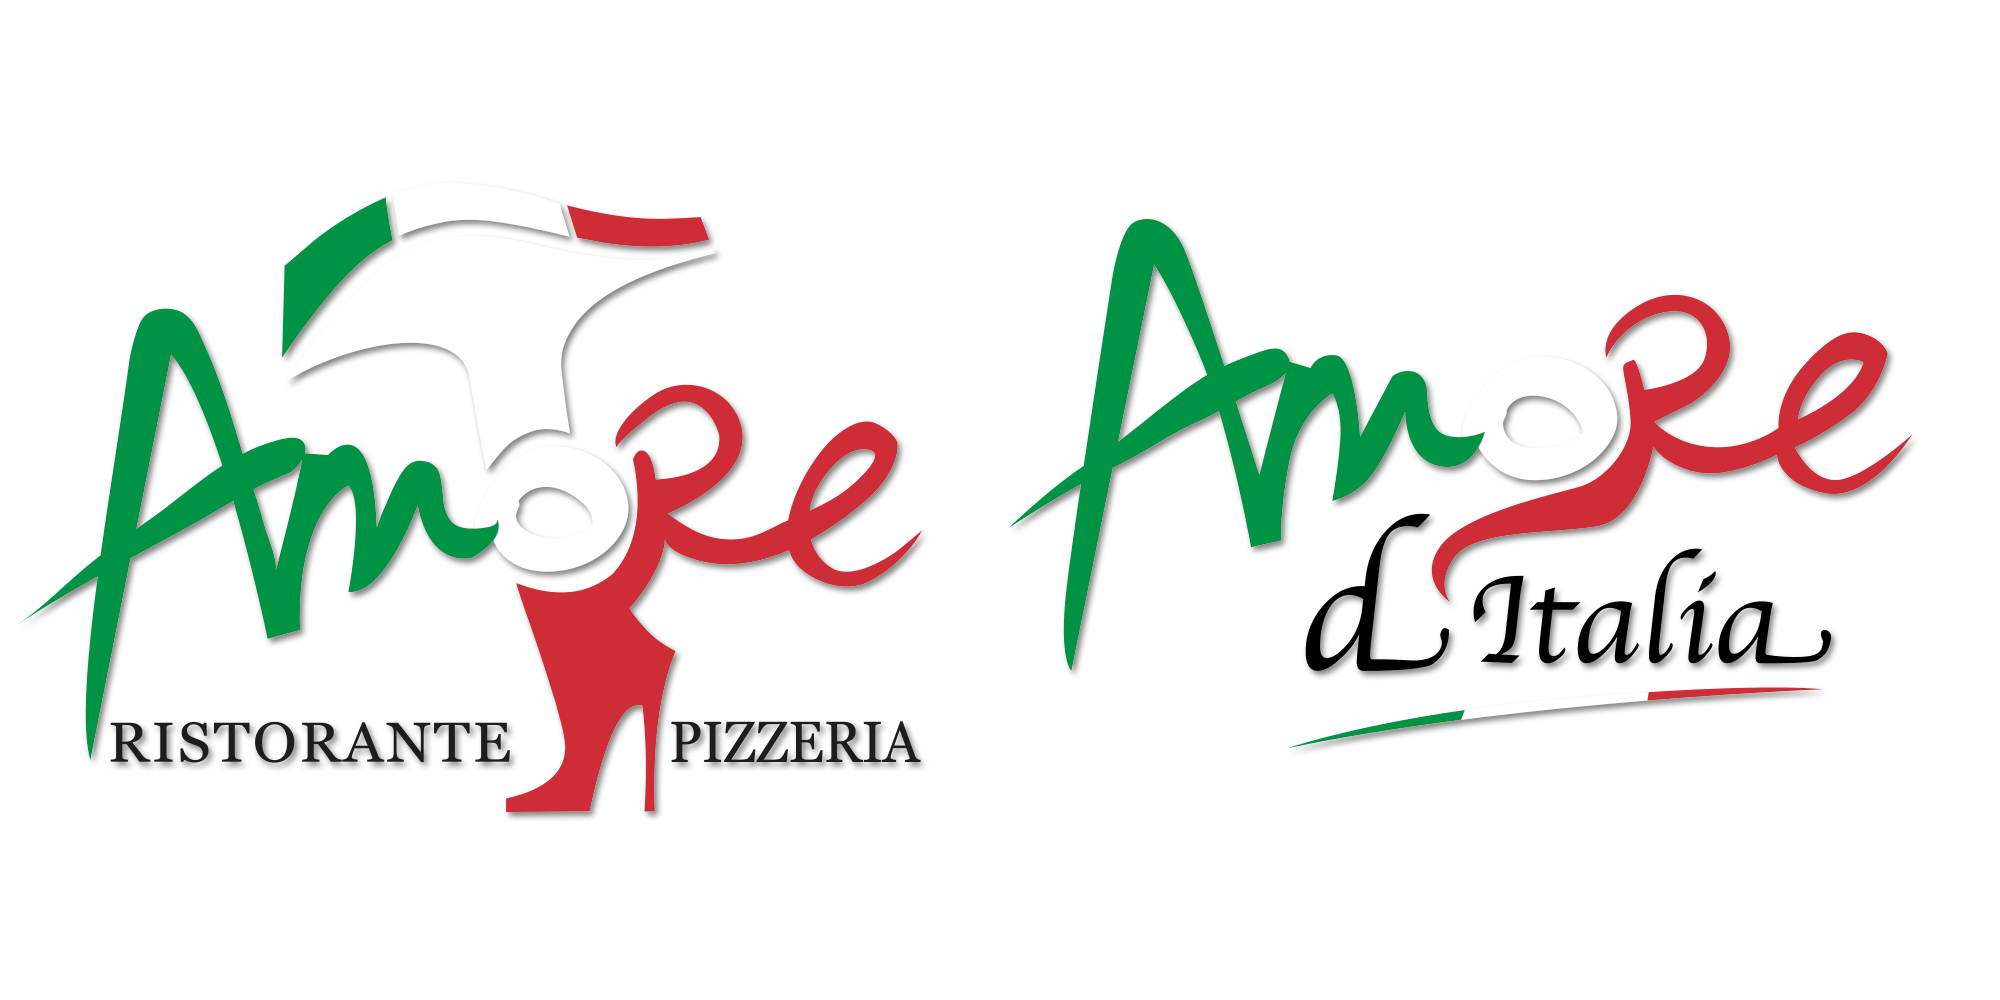 Amore   Glasgow Hdpng.com  - Amore Cafe, Transparent background PNG HD thumbnail